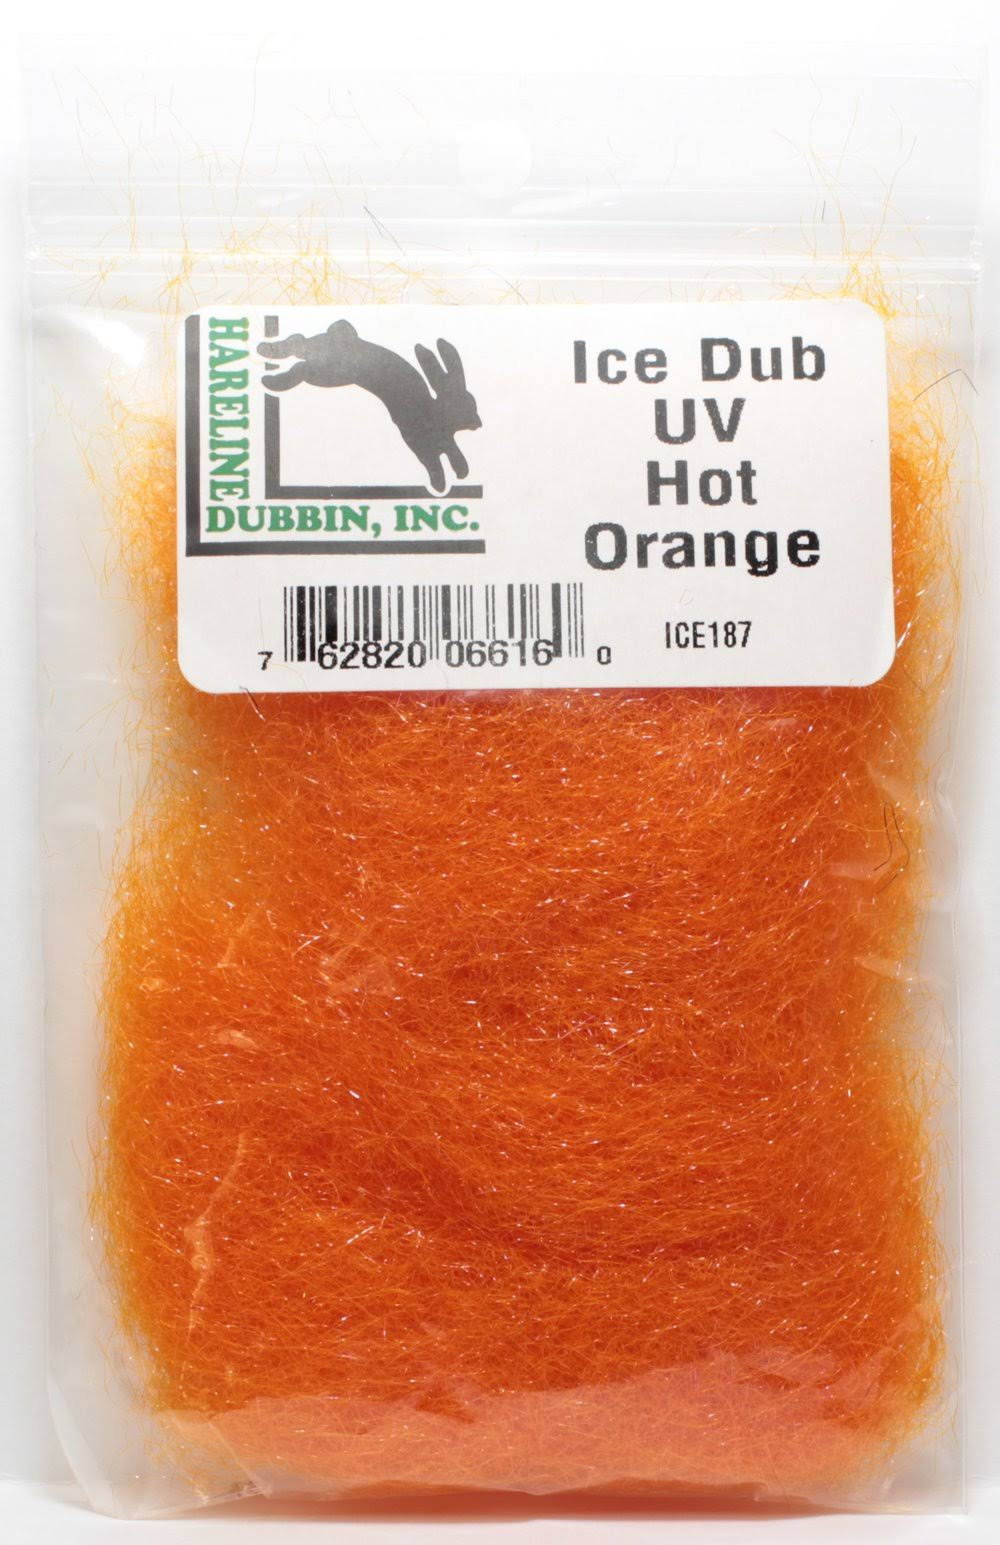 Hareline Dubbin Ice Dub UV ICE187 Fly Tying Material - Hot Orange